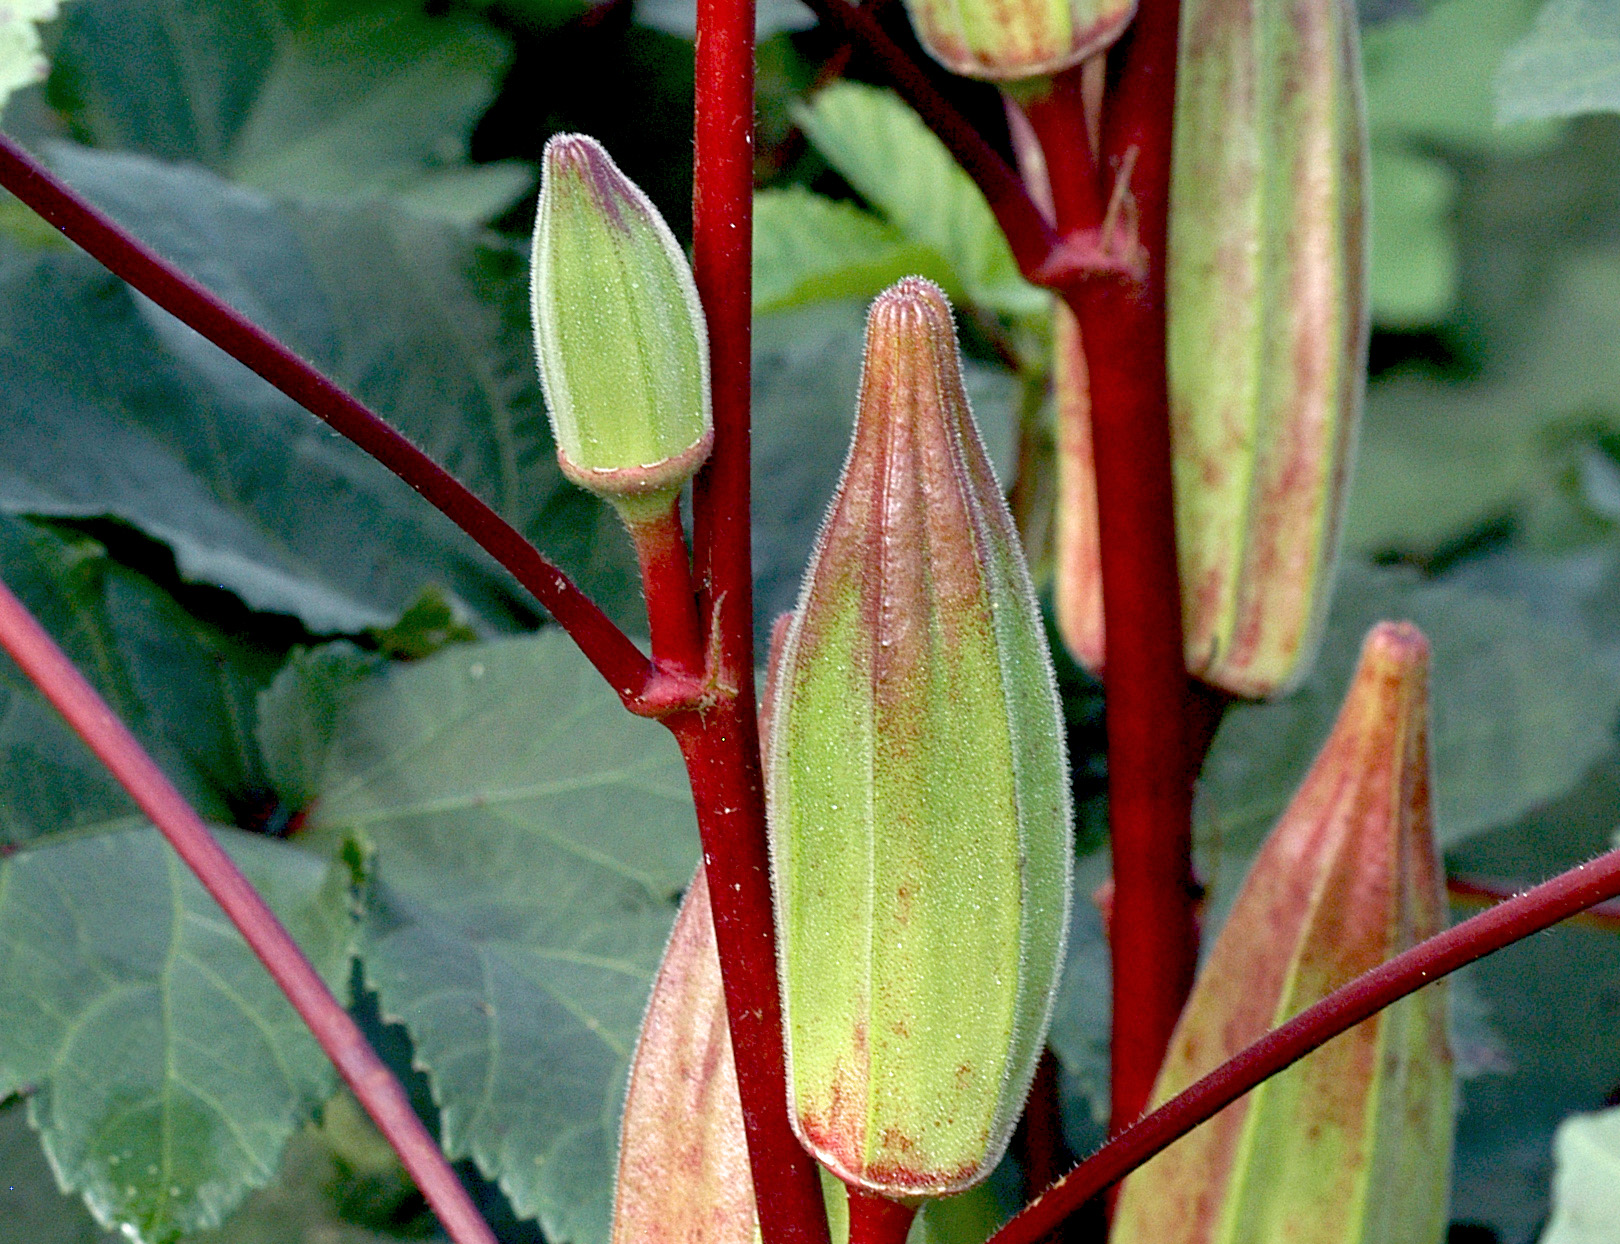 Gr Lrg moreover Gr Lrg together with Hill Country Heirloom Red Okra Lrg in addition L Ai Lrg further L Ae Lrg. on g lrg